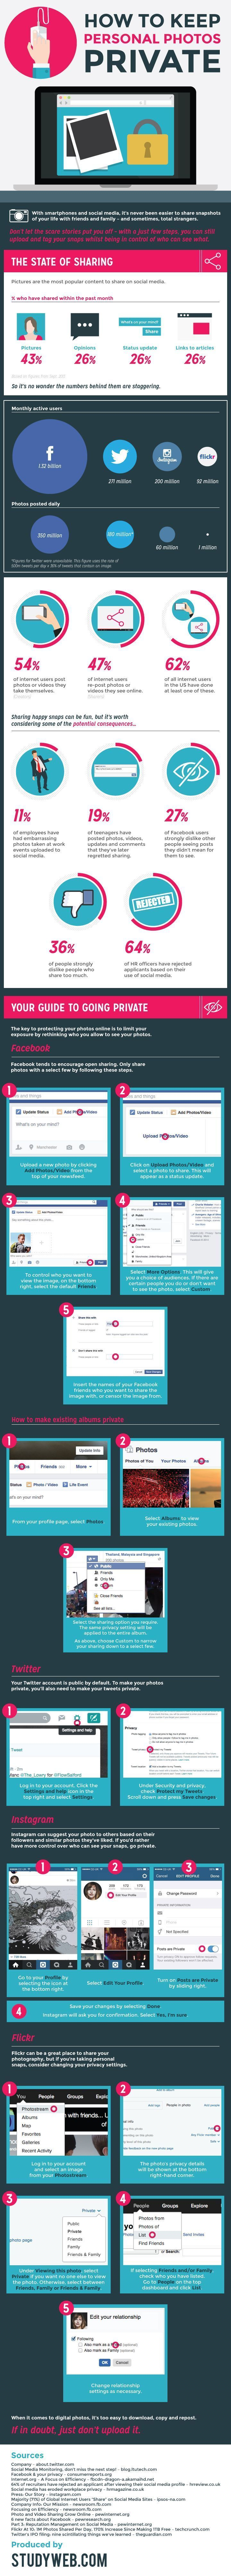 How to Change Photo Privacy Settings on Facebook, Twitter and Other Popular Social Networking Sites - #InfographicWith smartphones and social media, it's never been easier to share snapshots of your life with friends and family – and sometimes, total strangers.  Don't let the scare stories put you off – with a just few steps, you can still upload and tag your snaps whilst being in control of who can see what.